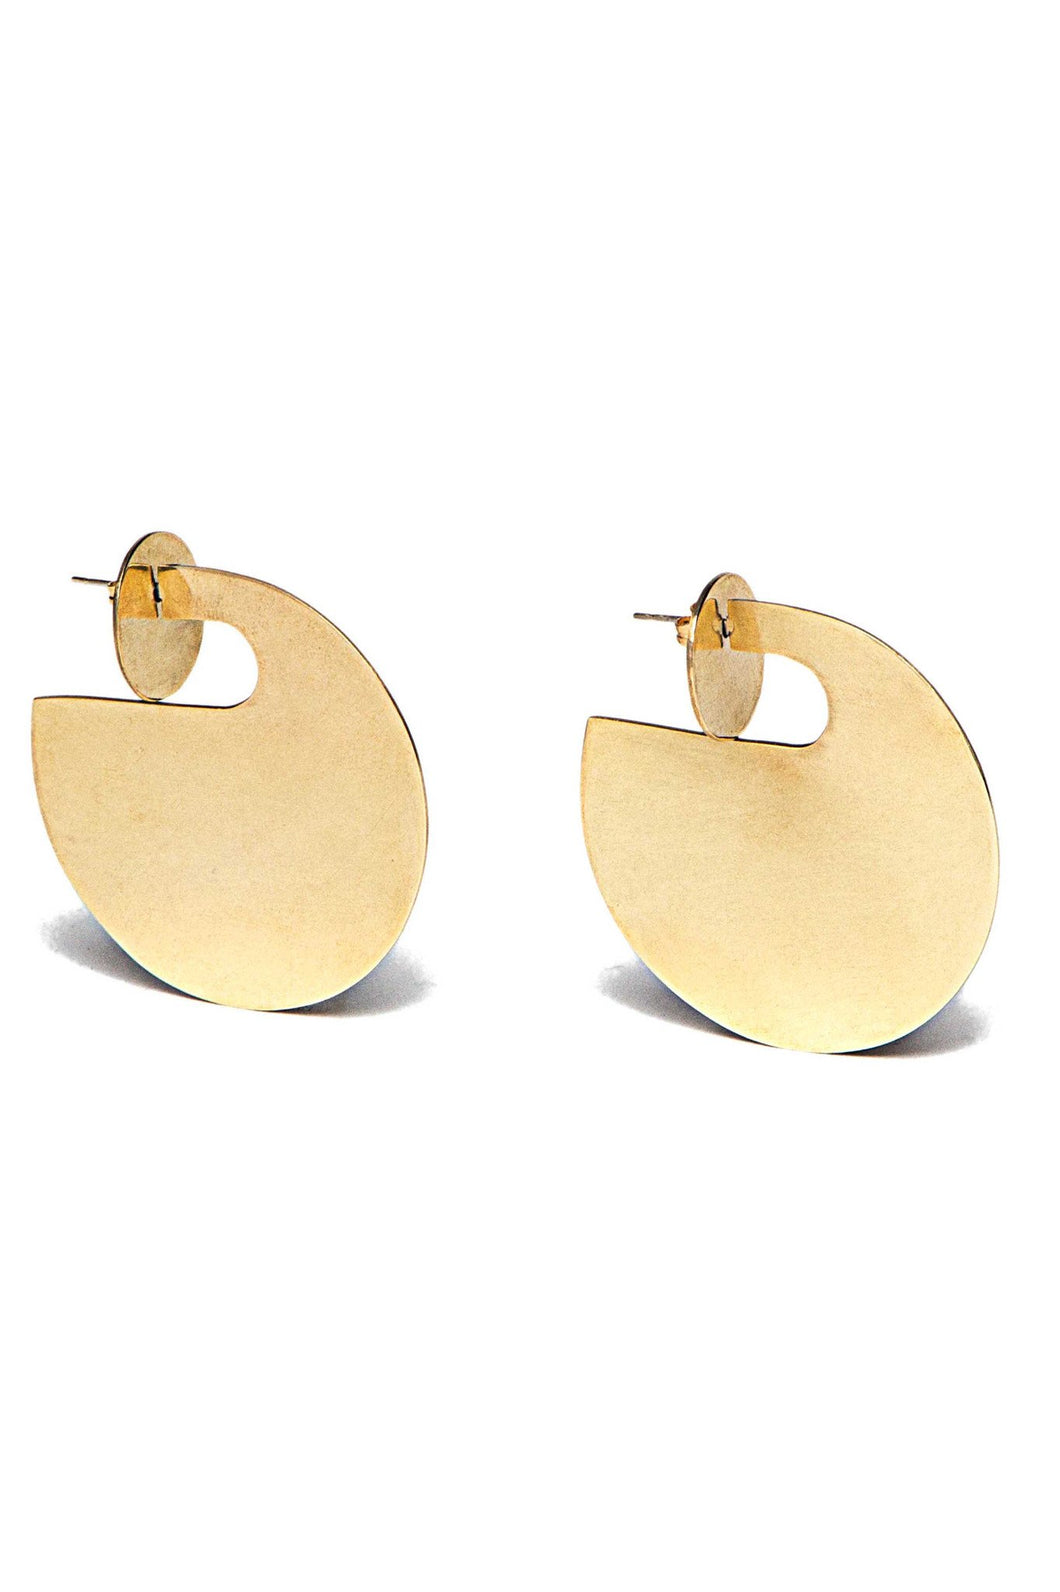 *Exclusive Statement Double Coin Plate Jacket Earrings